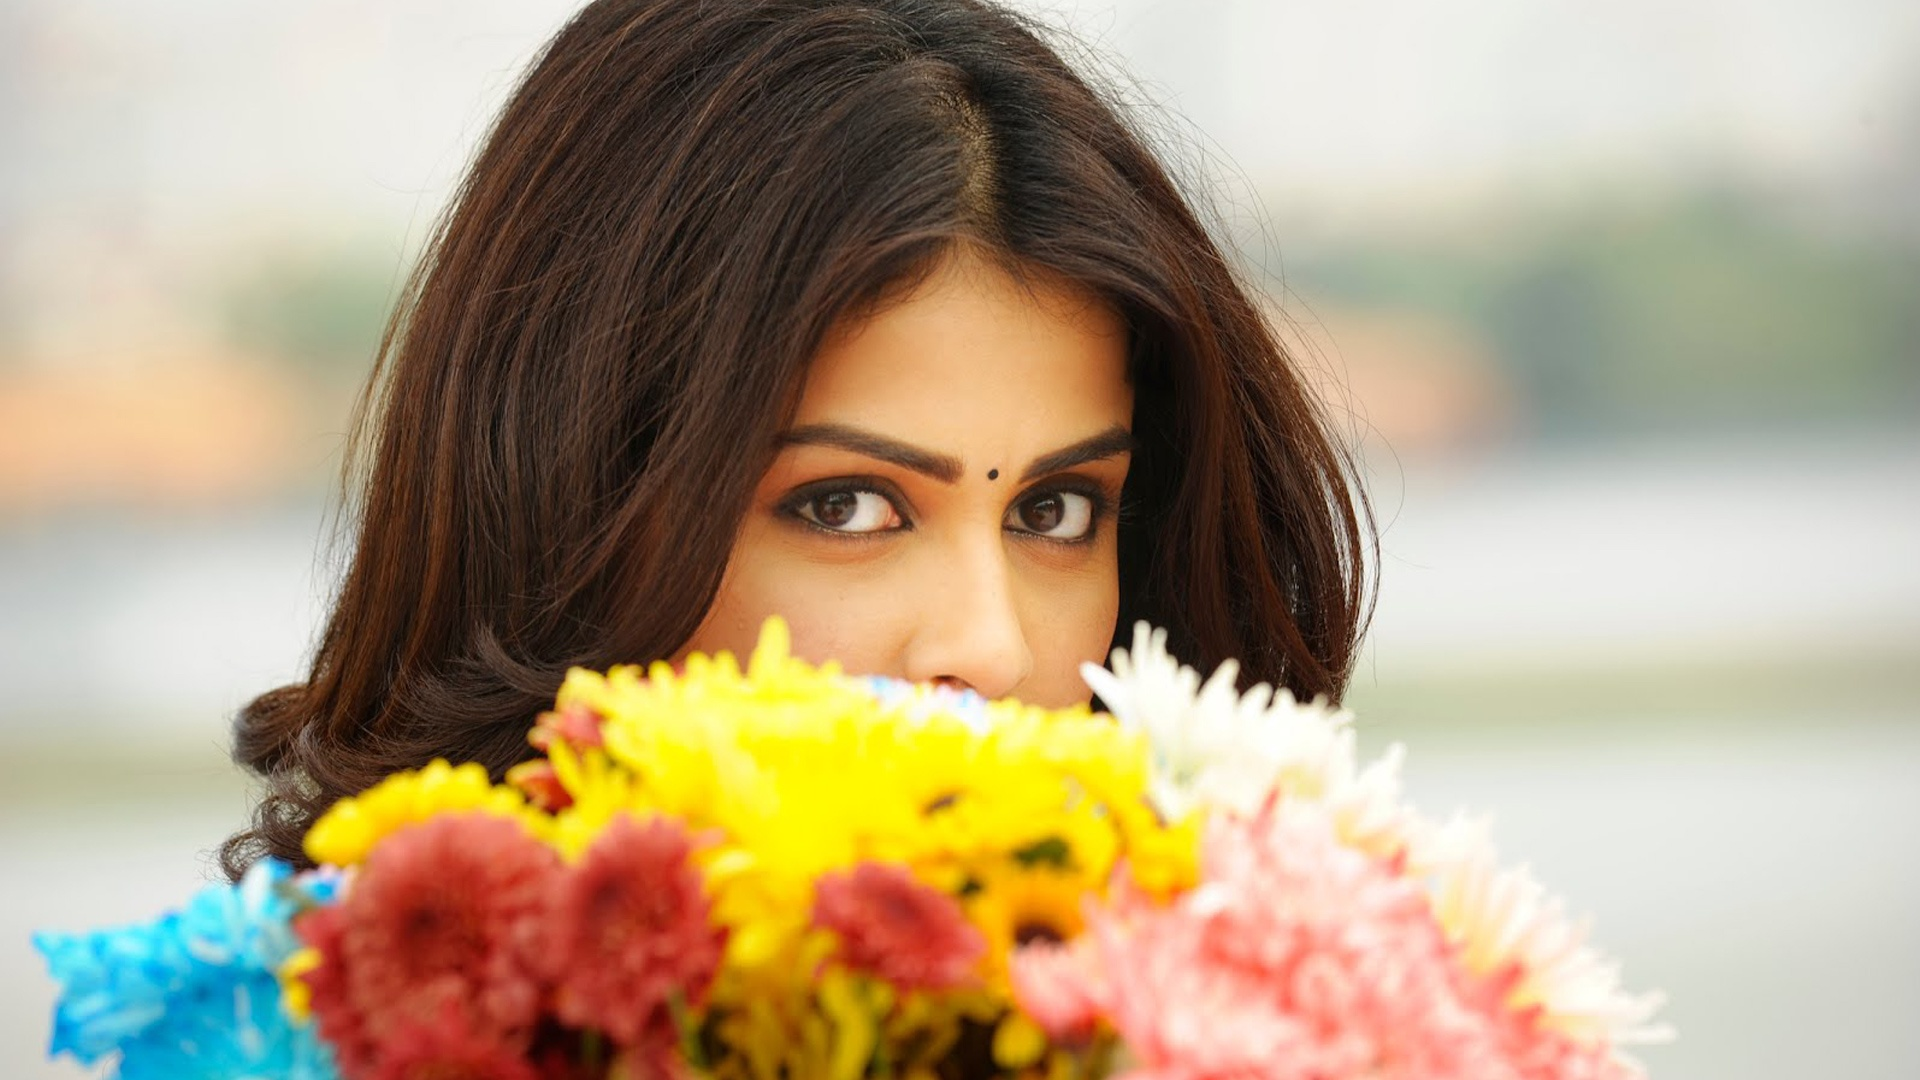 genelia photos hd